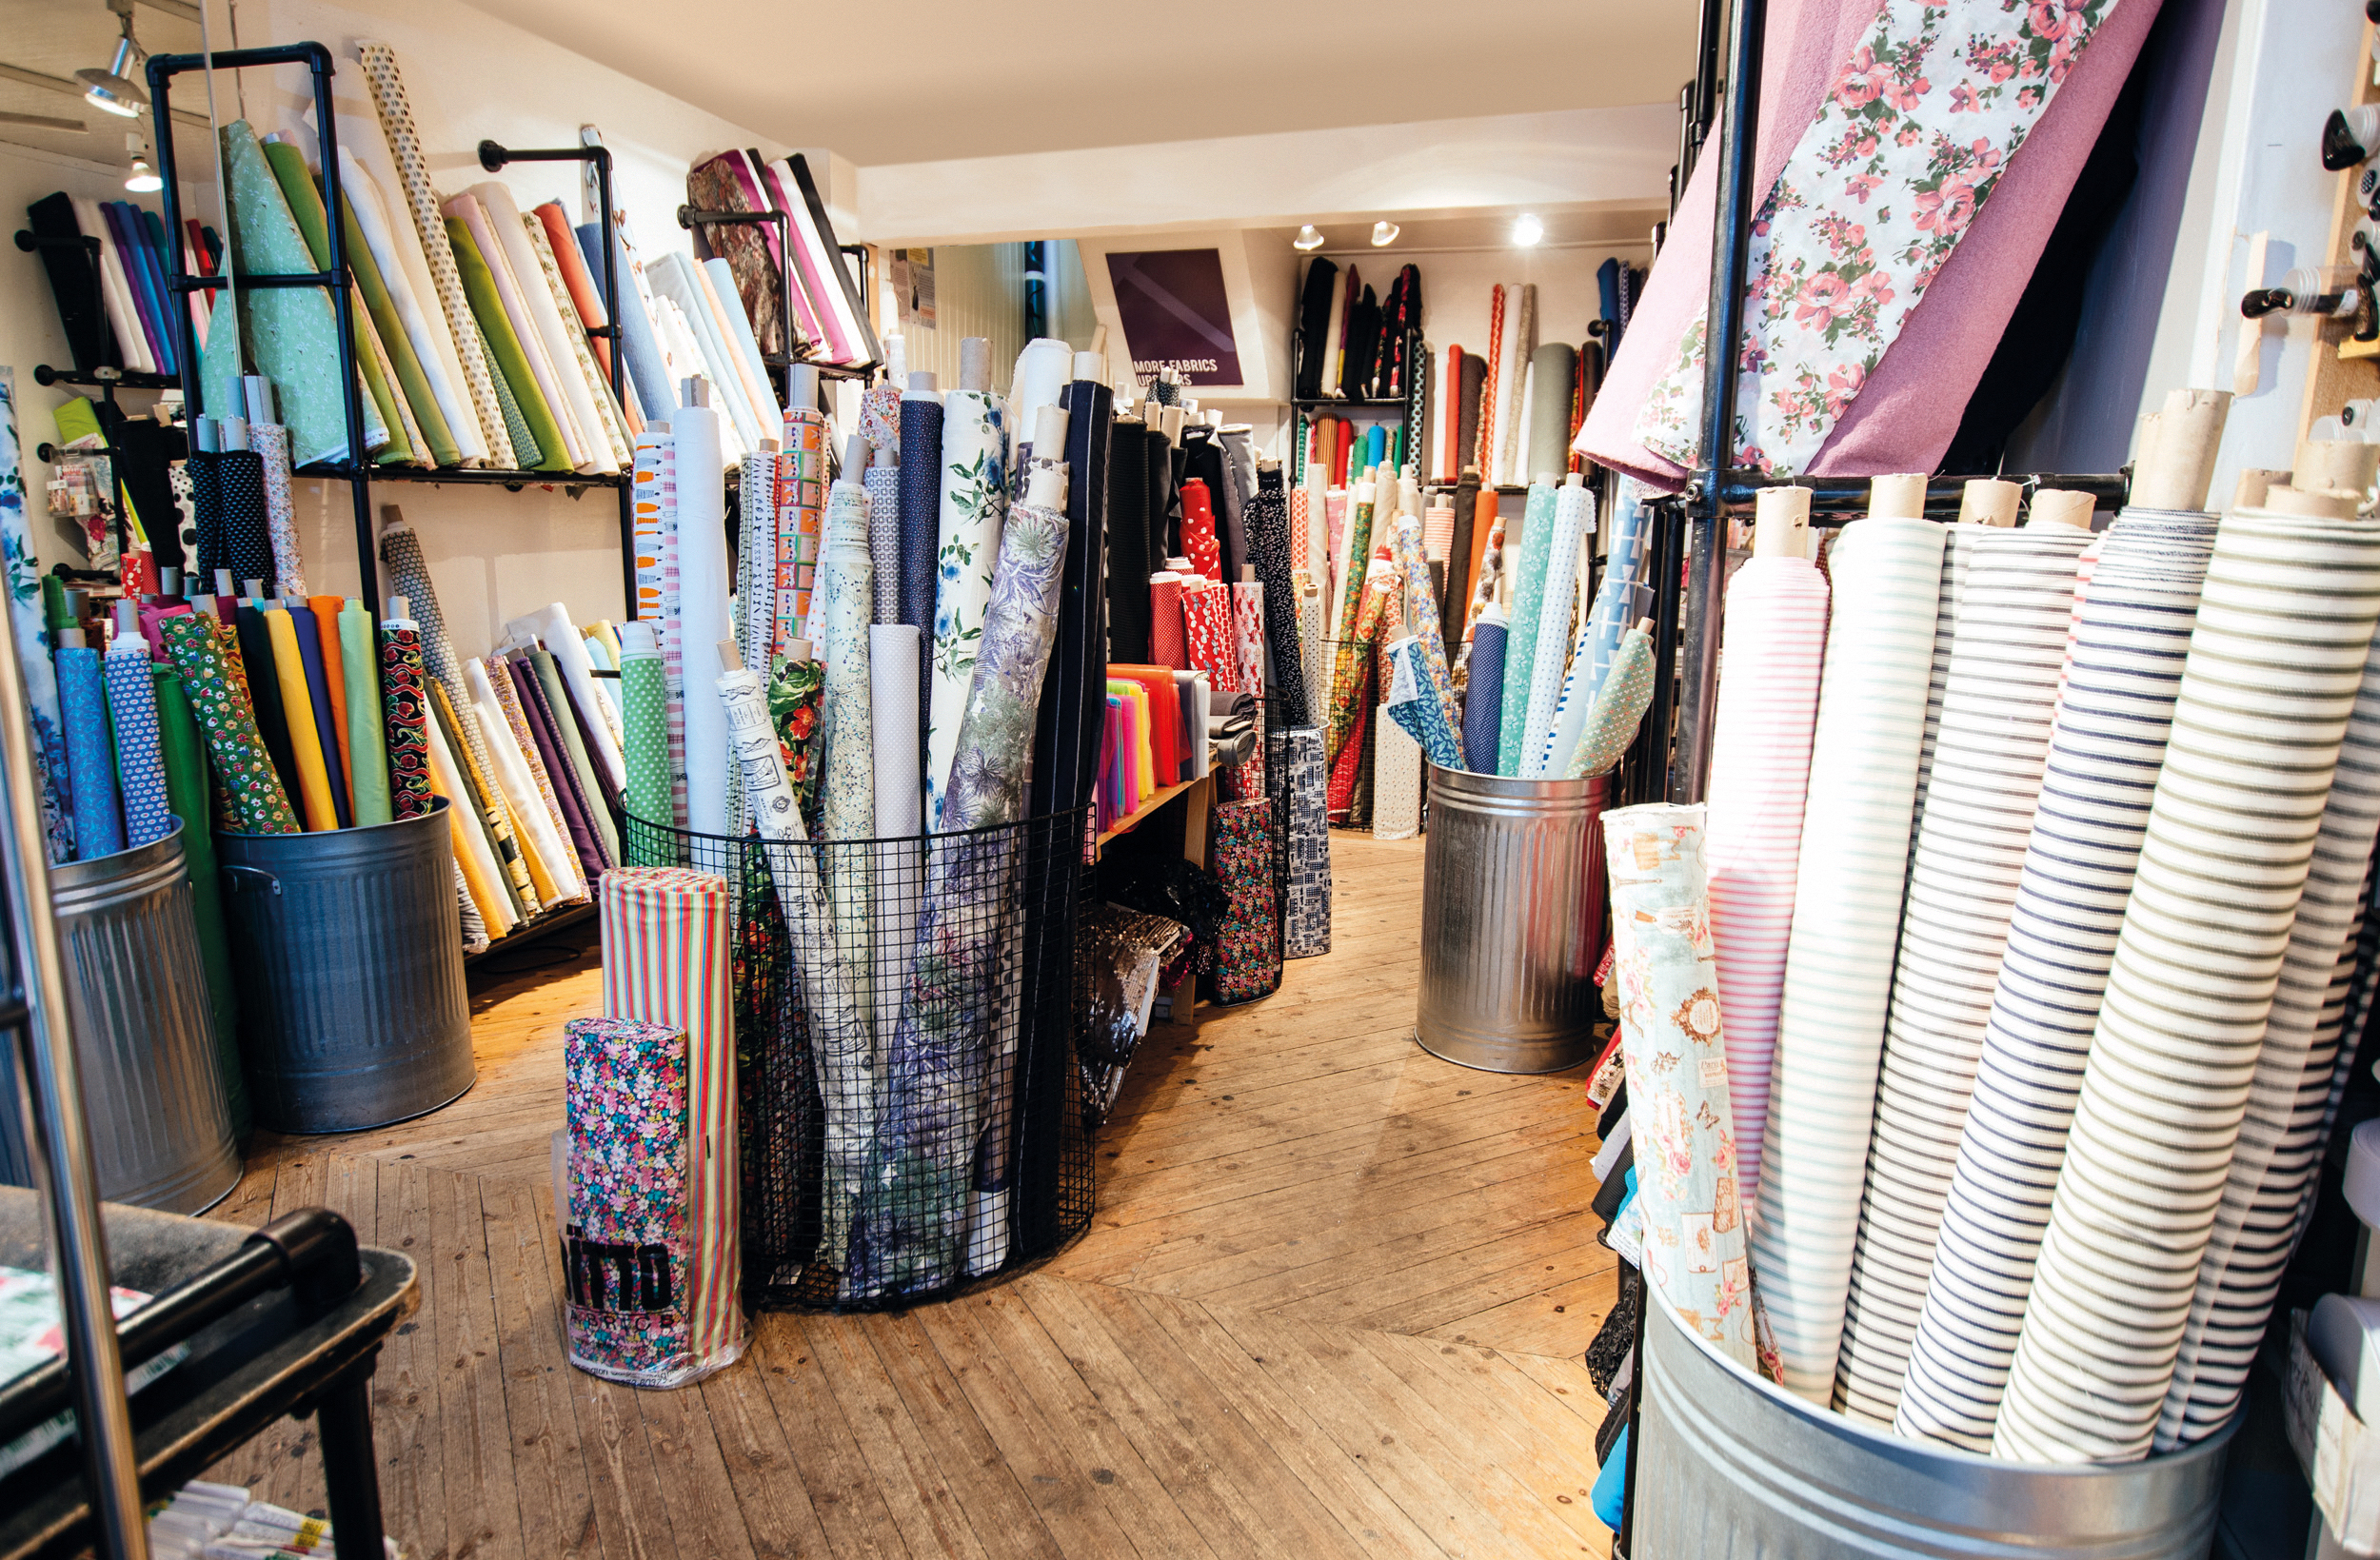 Roll on Brighton Knit and Make Social - we want at that fab fabric!